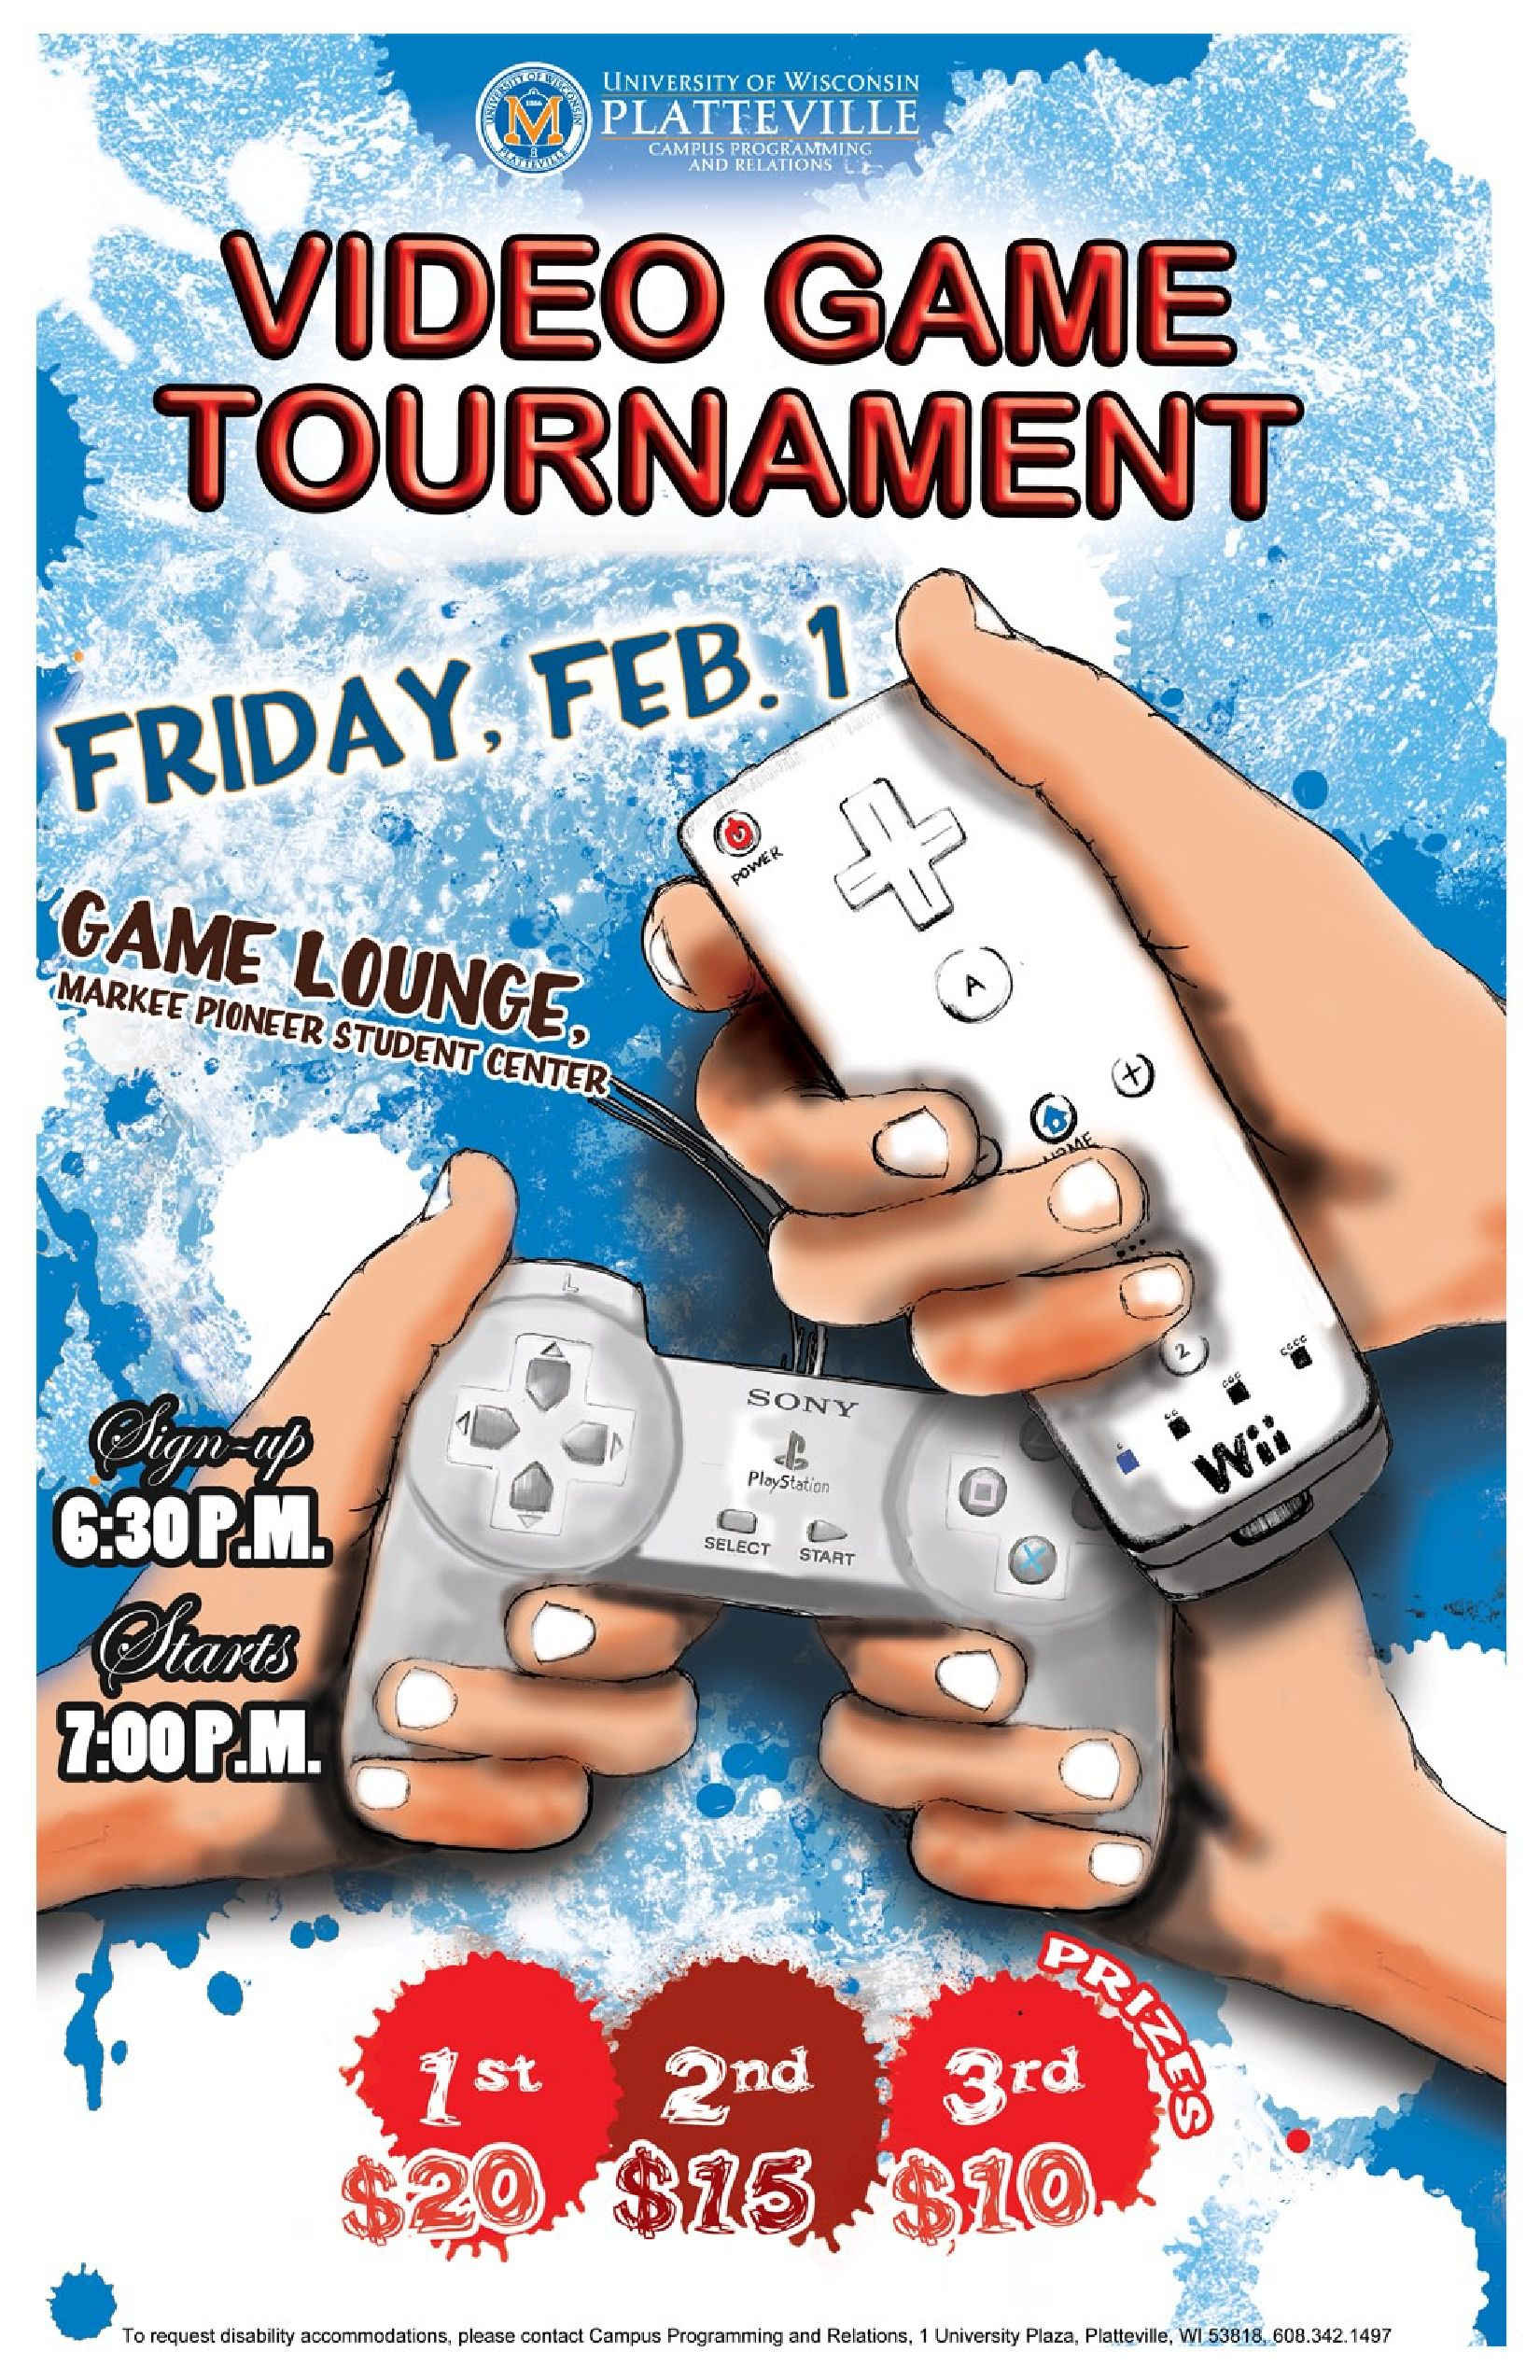 Video Game Tournament 2/1 Video game tournaments, Youth